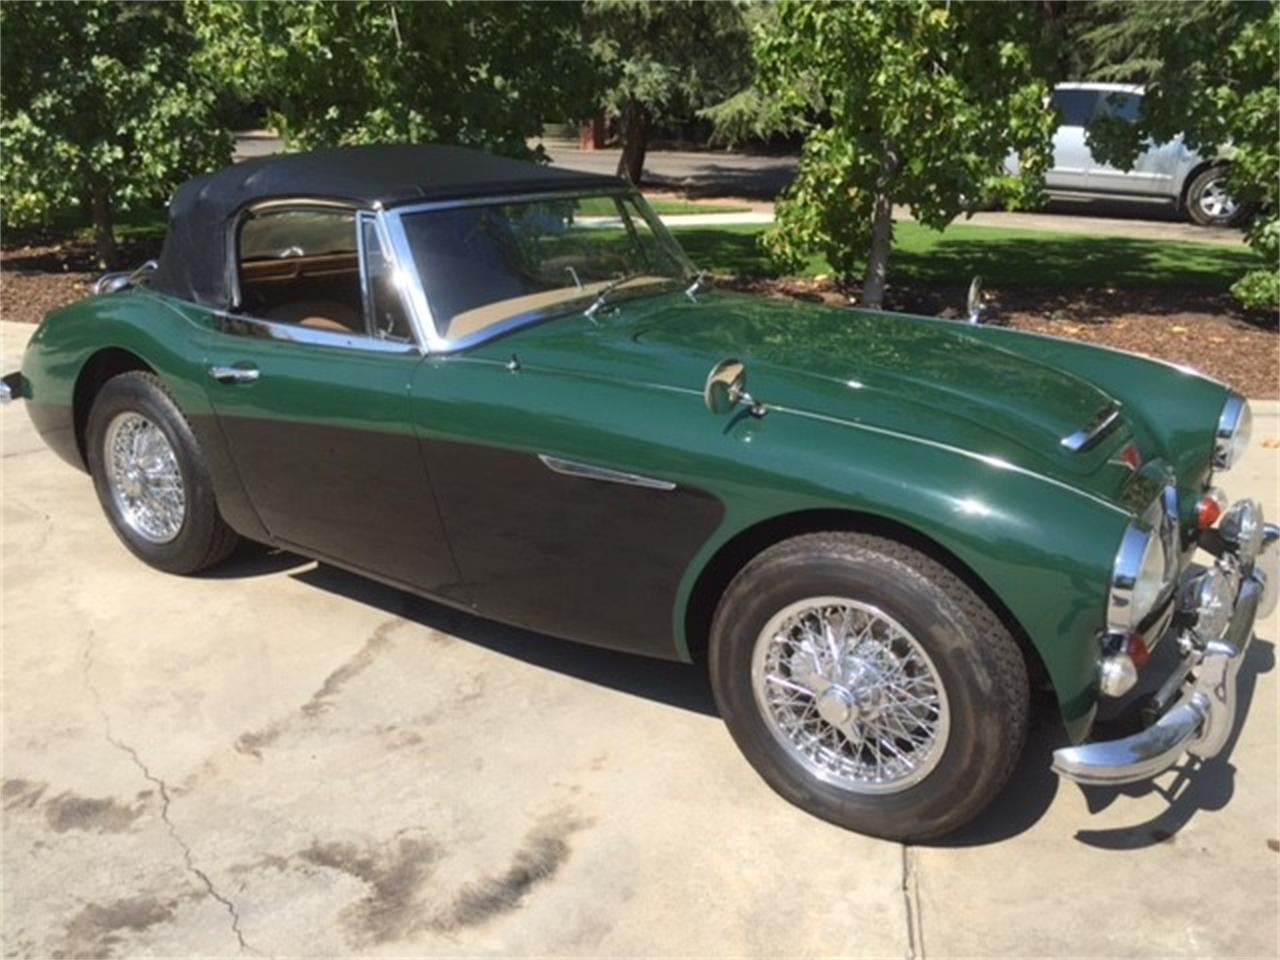 Large Picture of Classic 1967 Austin-Healey 3000 - $65,000.00 Offered by a Private Seller - LBWQ